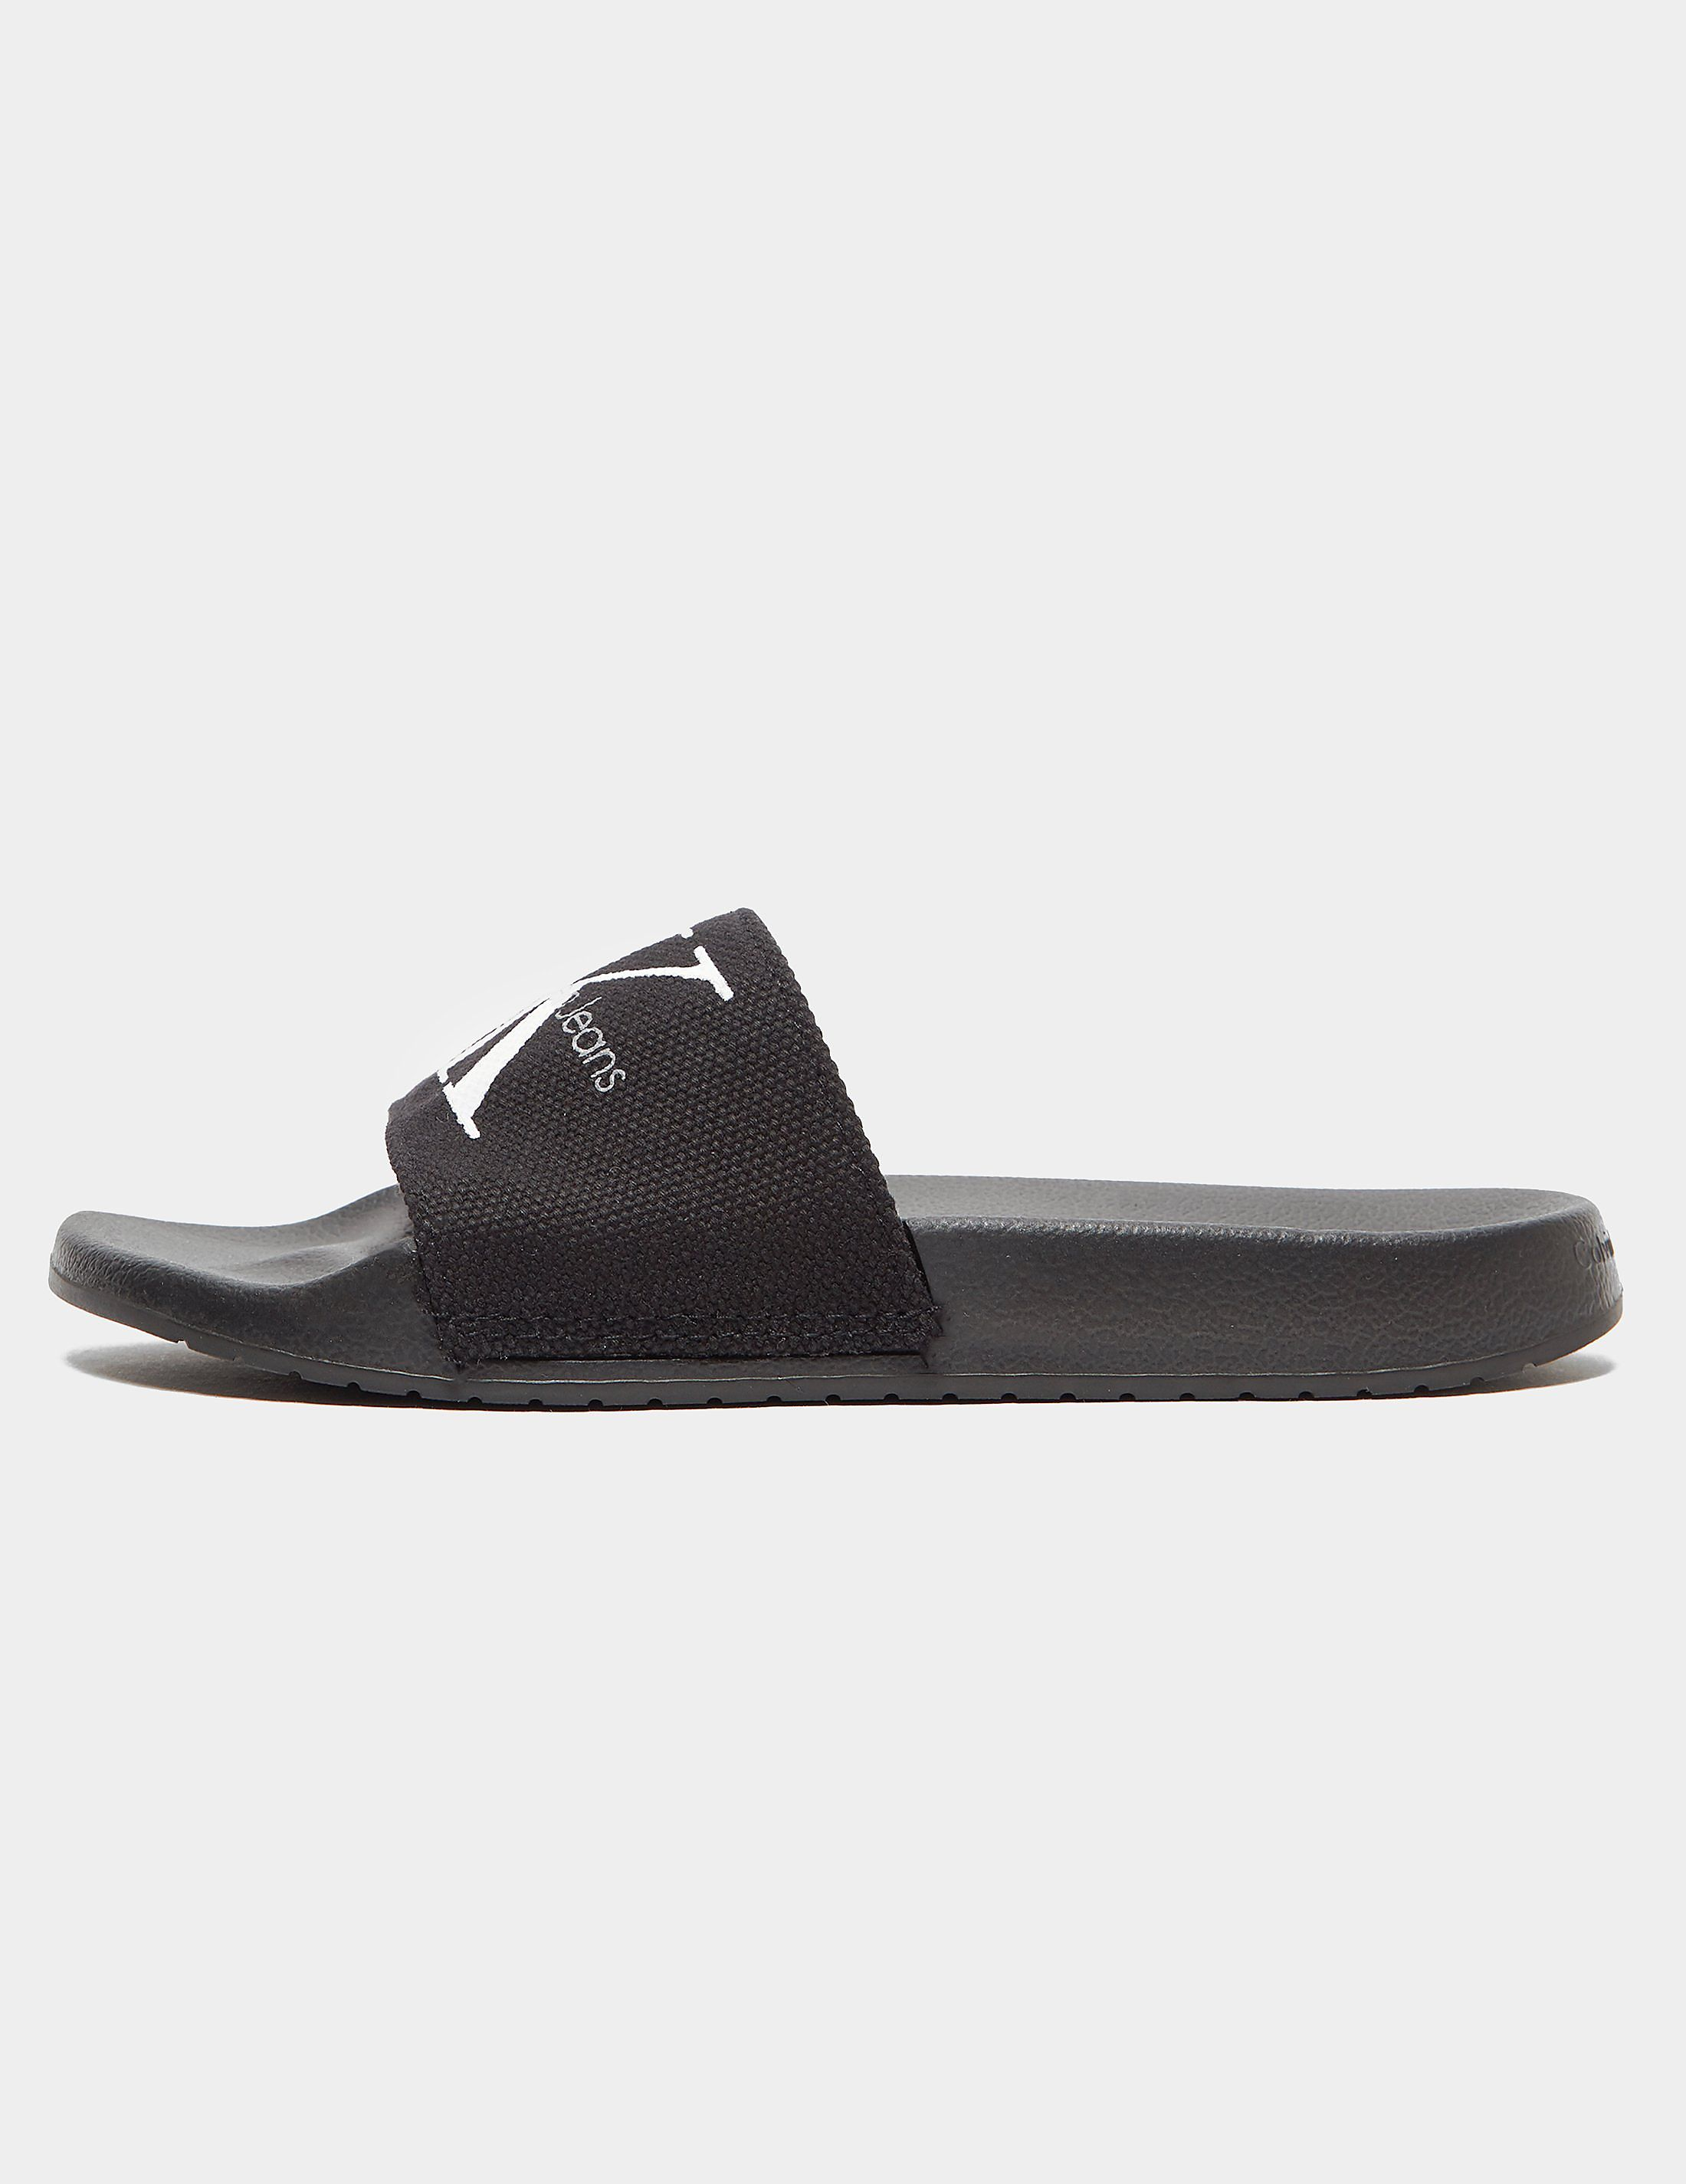 Calvin Klein Jeans Chantal Slides Women's by Tessuti